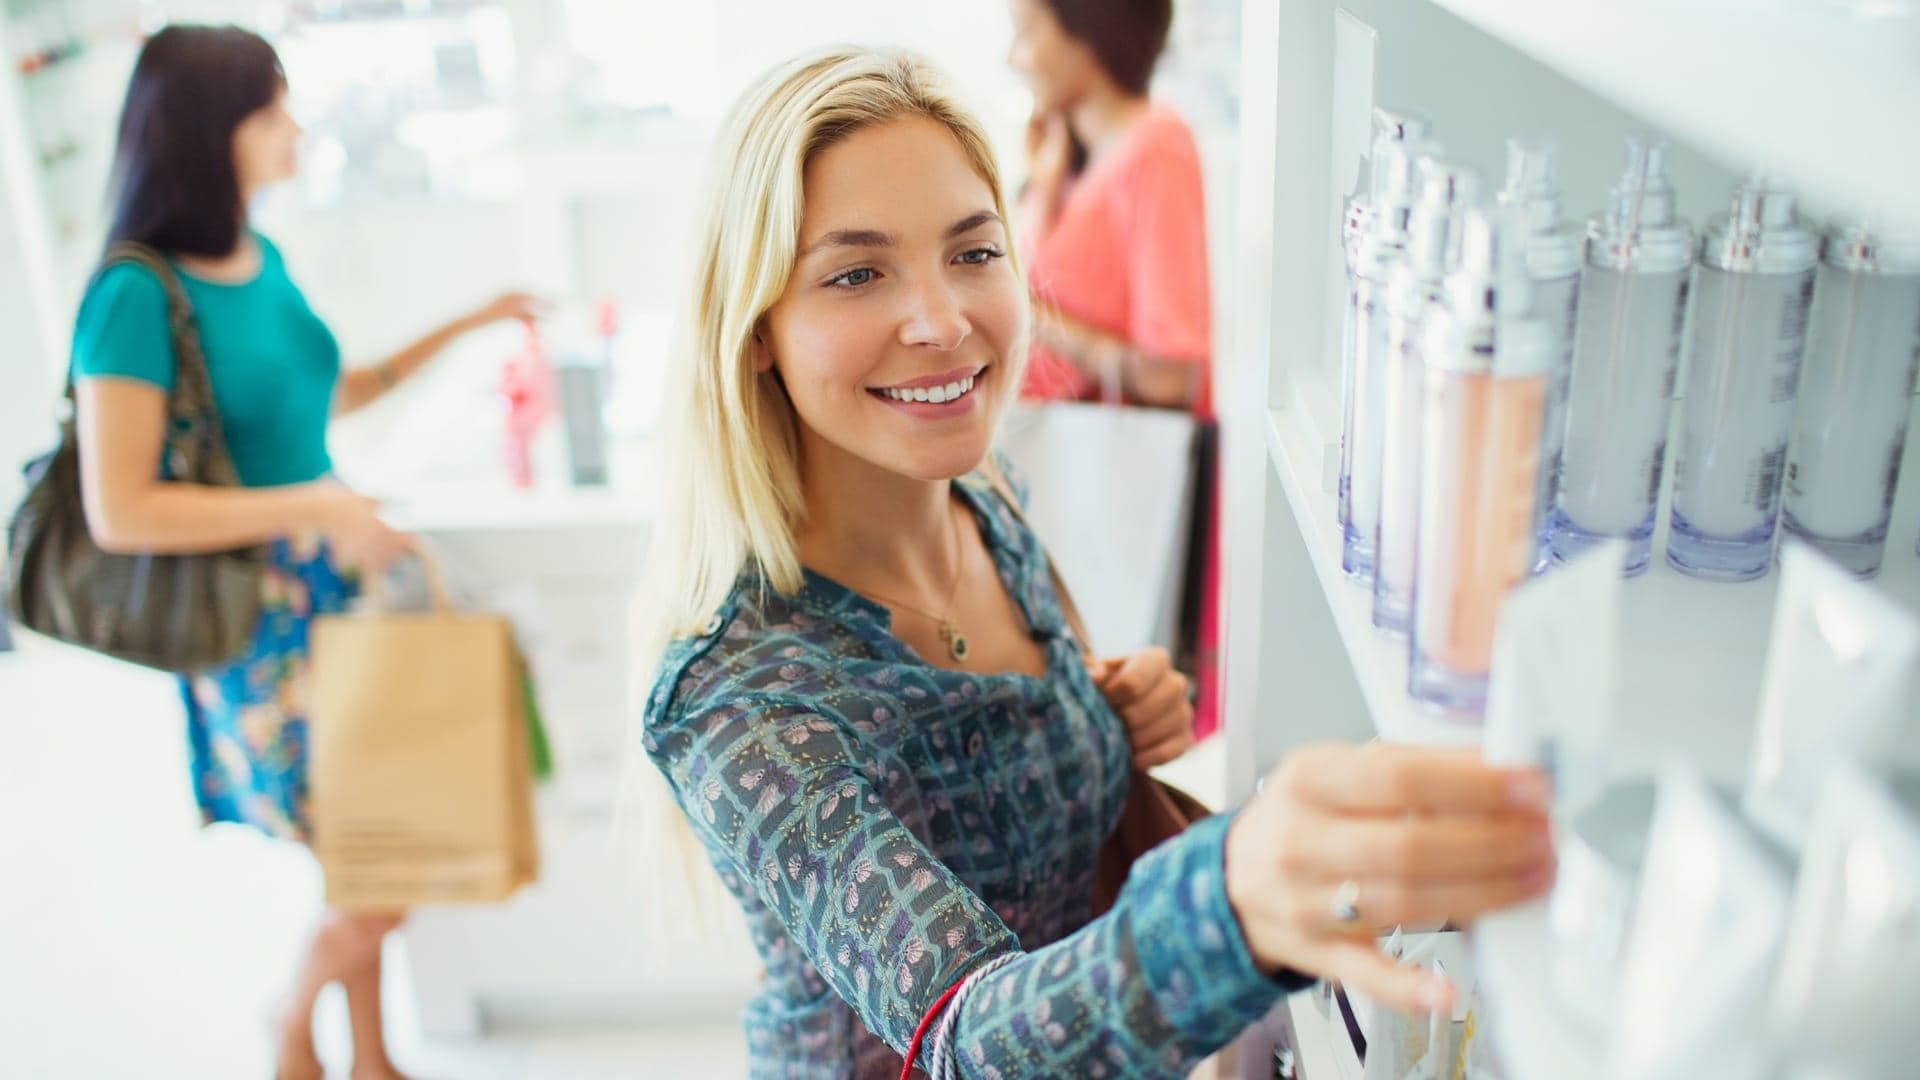 Three young women shopping for skin care products